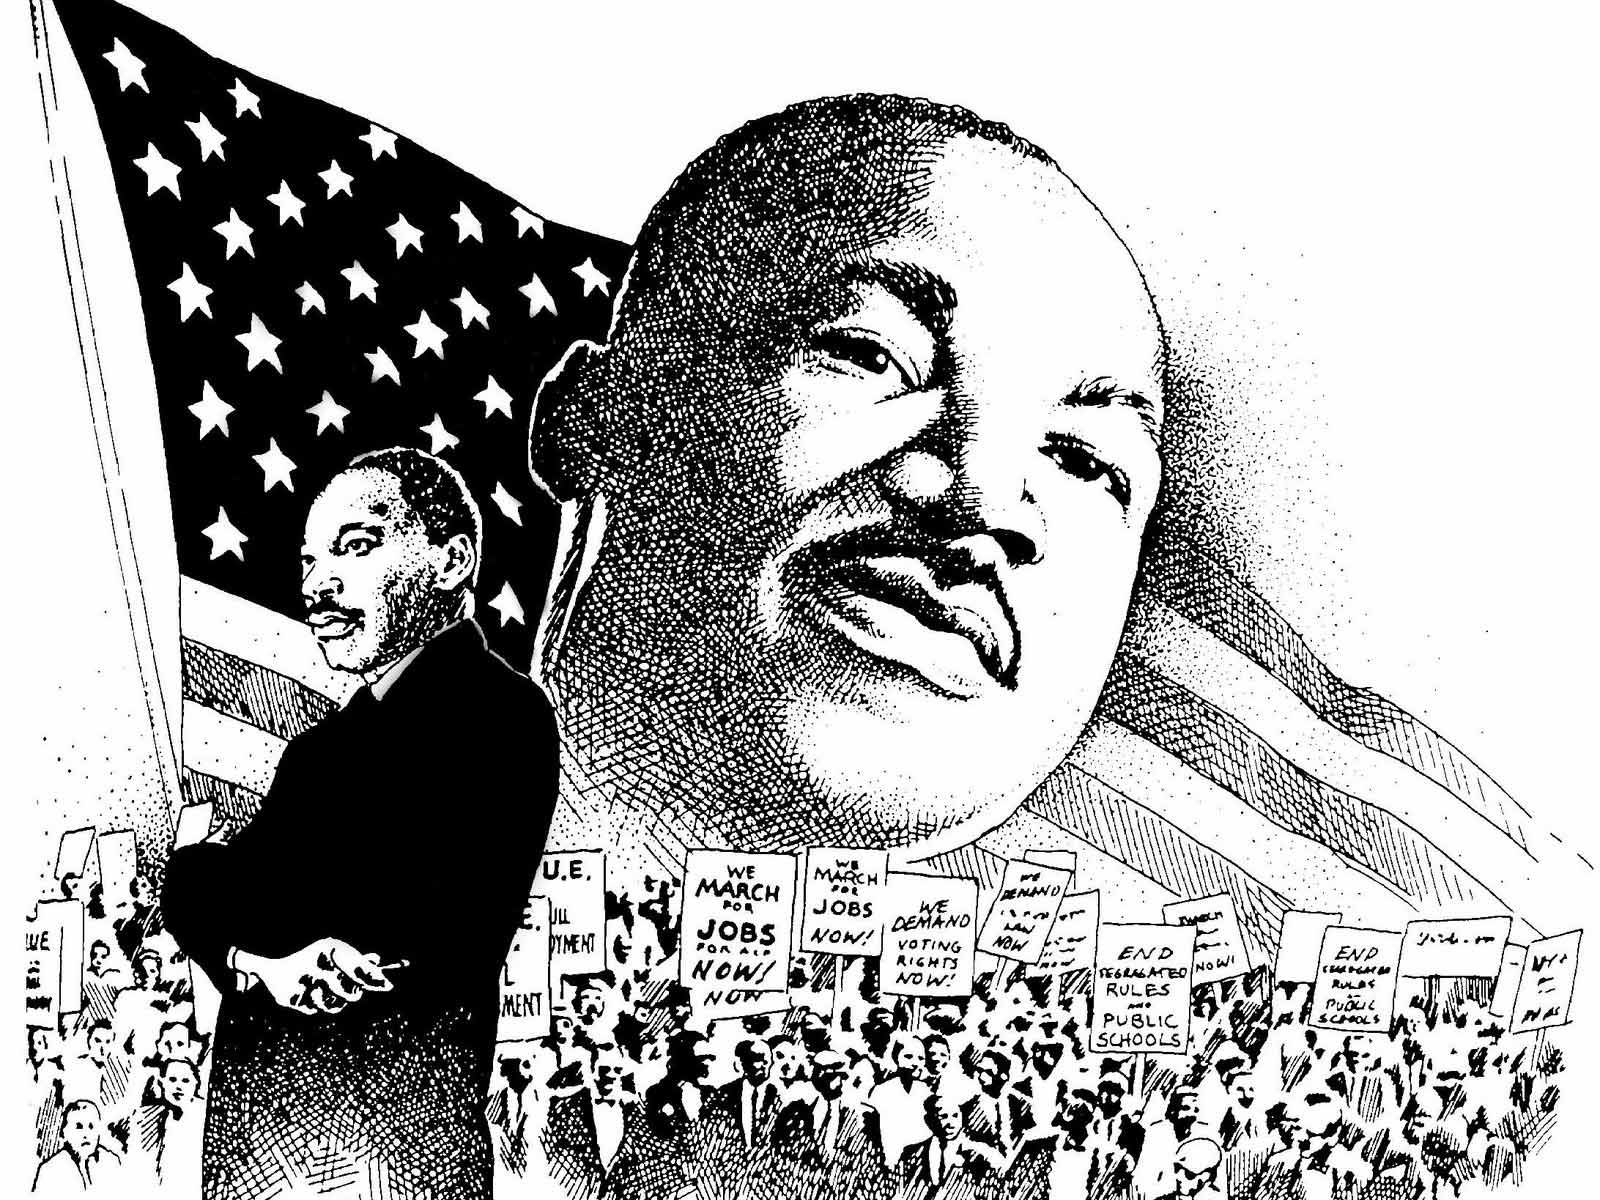 Mlk holiday clipart clipart free stock Free MLK Holiday Cliparts, Download Free Clip Art, Free Clip ... clipart free stock